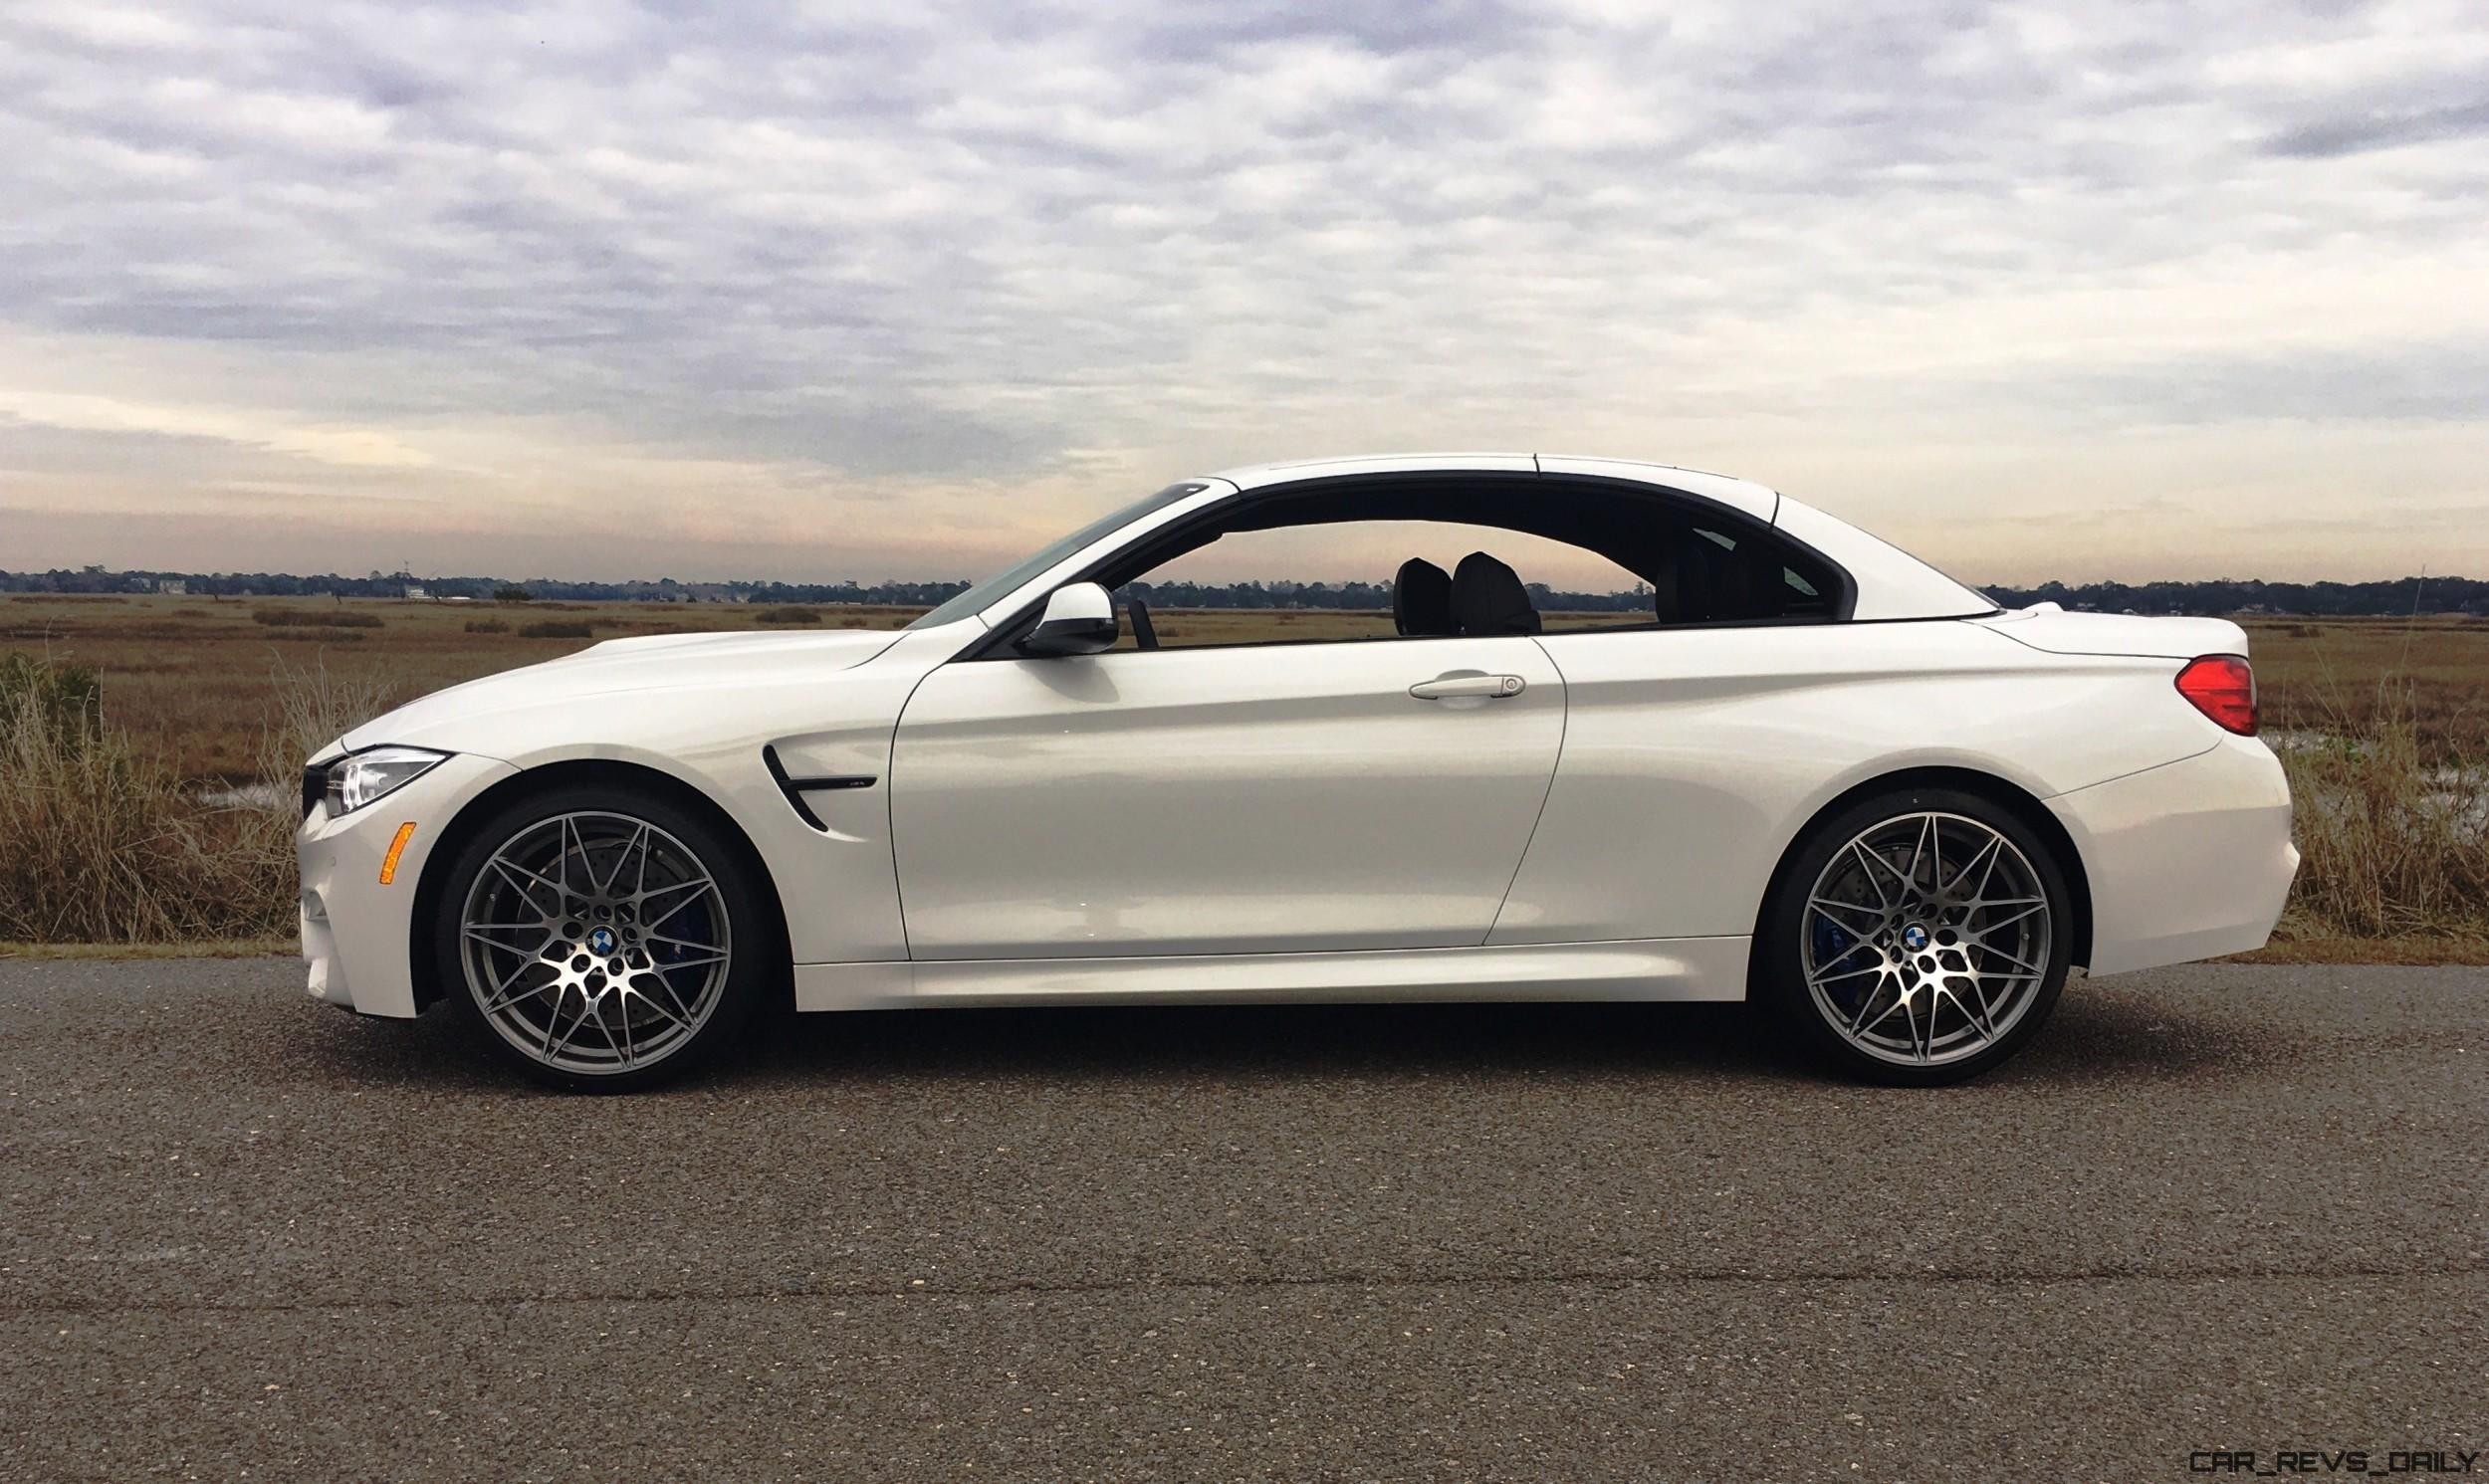 BMW M Competition Package Convertible - 2013 bmw m4